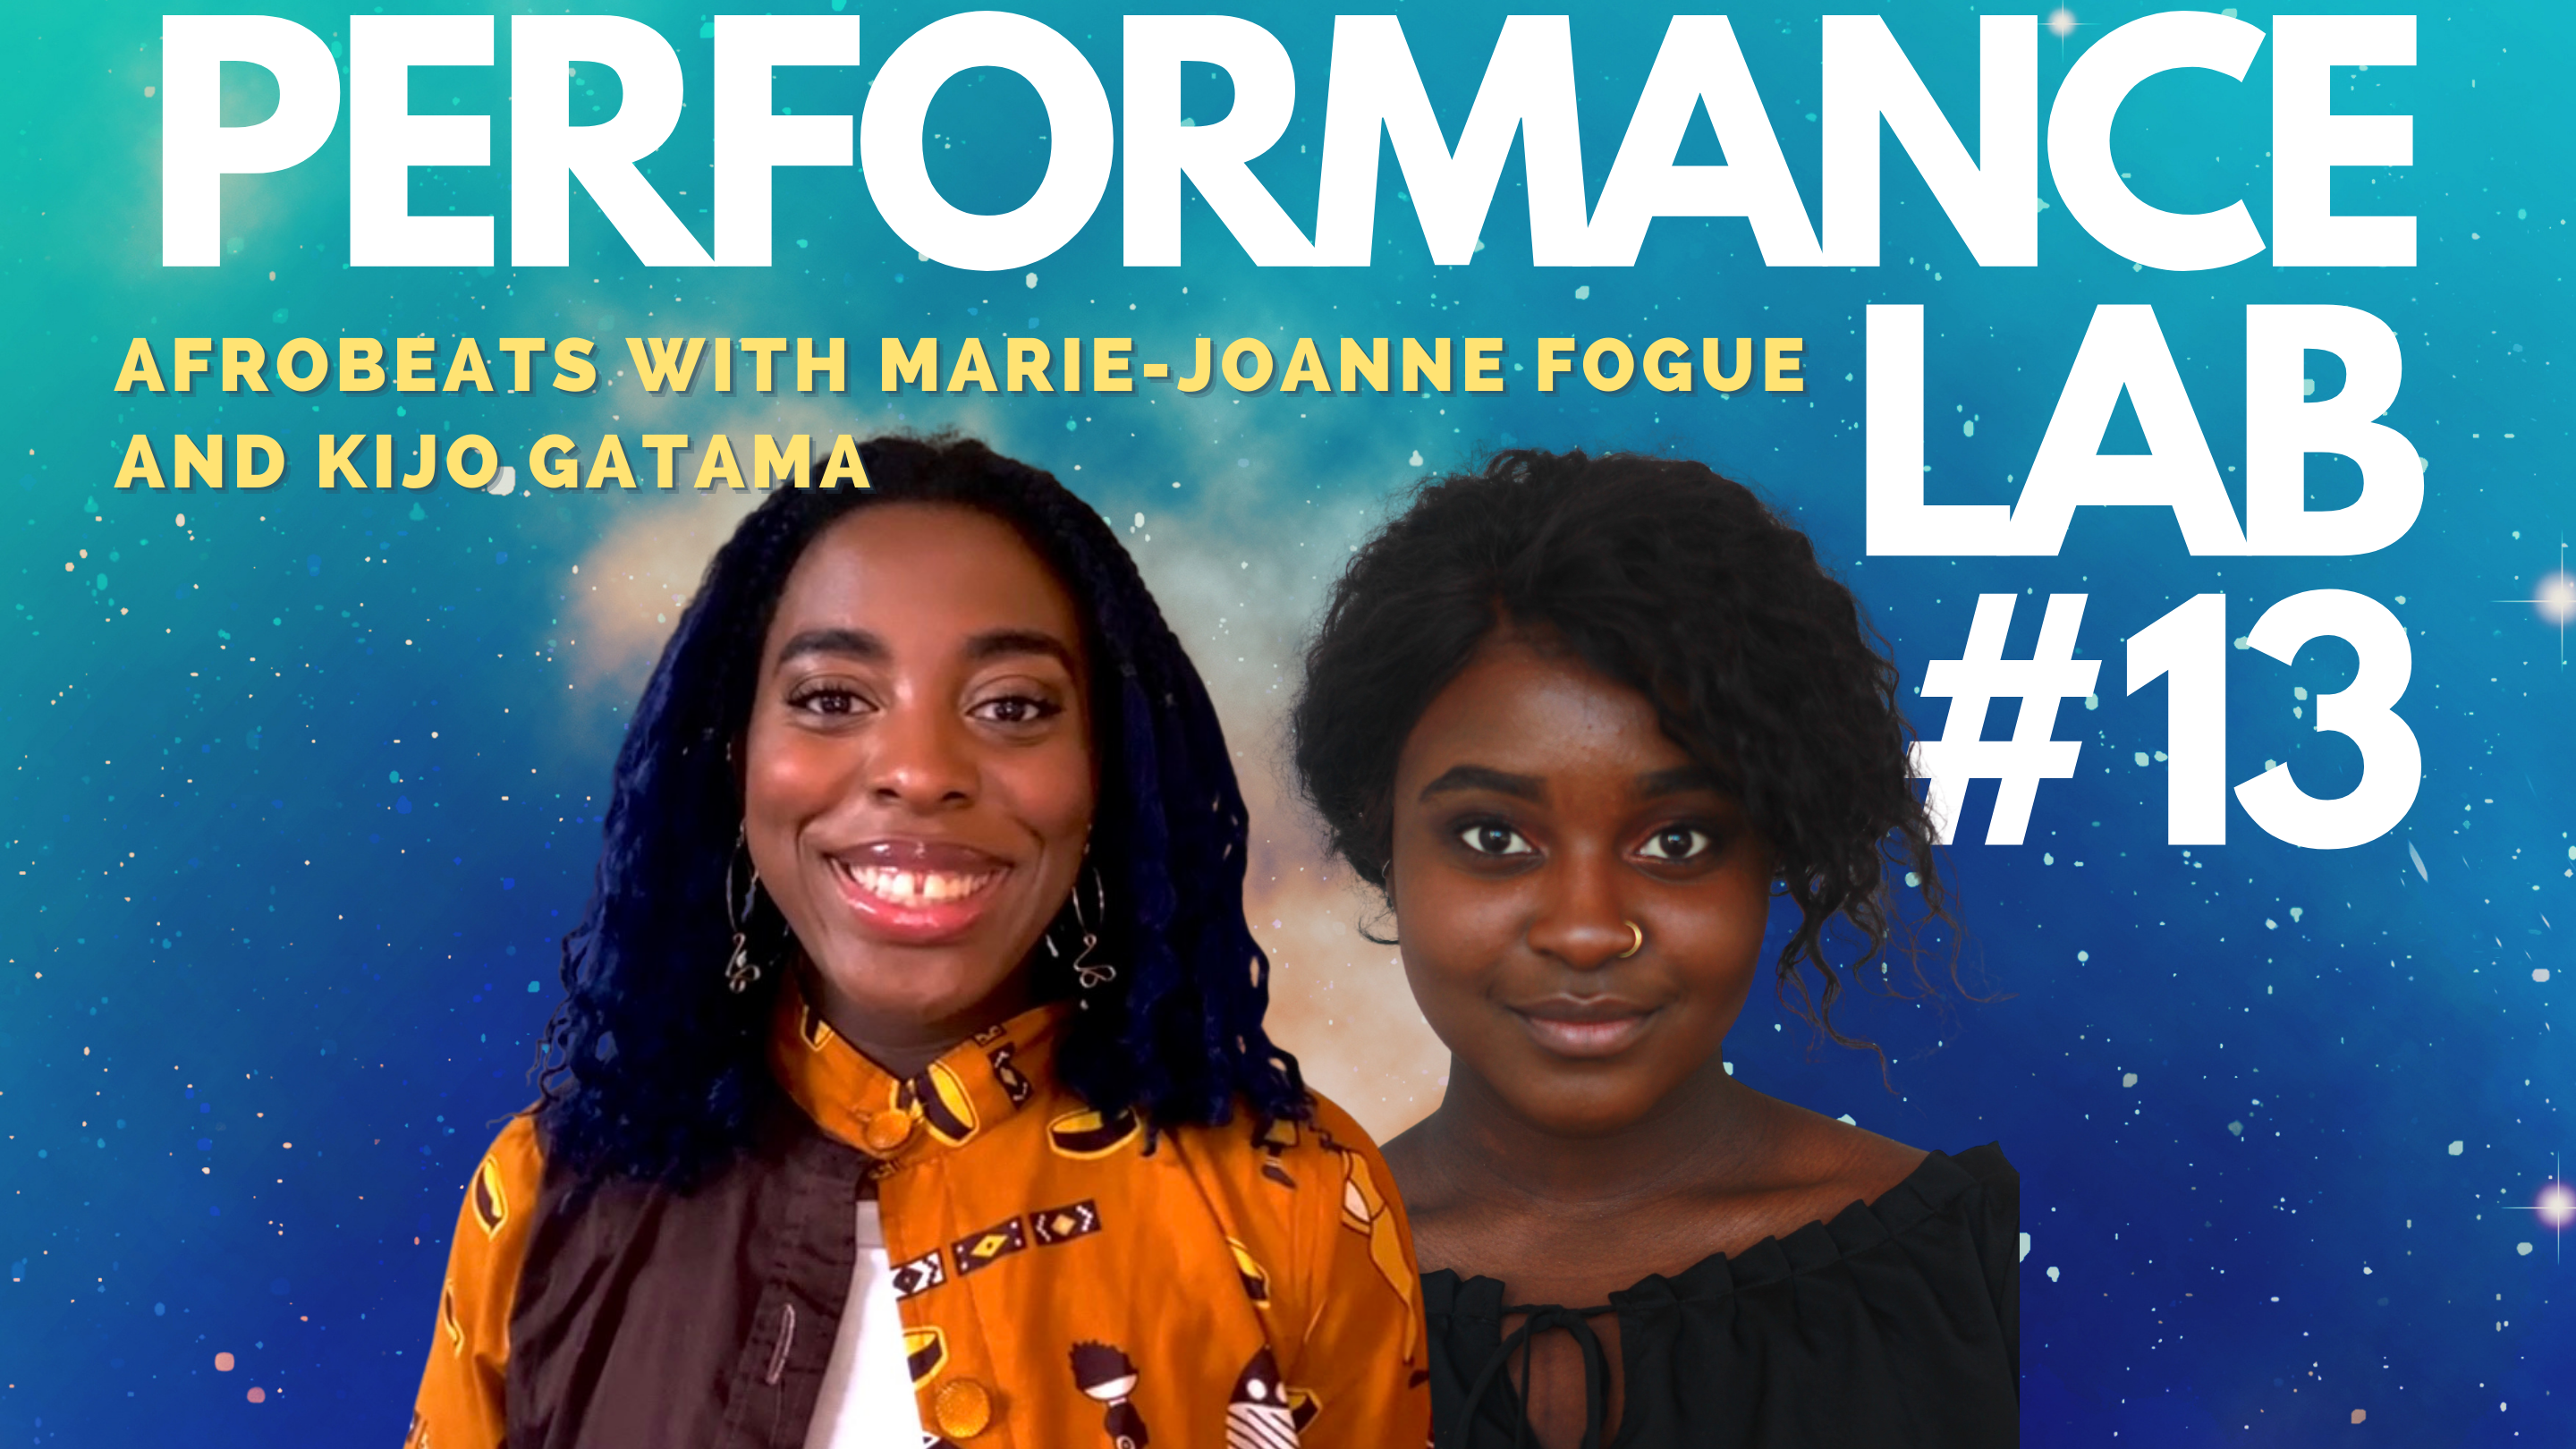 """""""Alt-Text Kijo Gatama + Maire Joanne Fogue Makou, with the text PERFORMANCE LAB #13. Afrobeats with Kijo Gatama + Maire Joanne Fogue Makou, Link in Bio. Kijo and text are layered on a background of a bright blue, indigo and orange galaxy."""""""